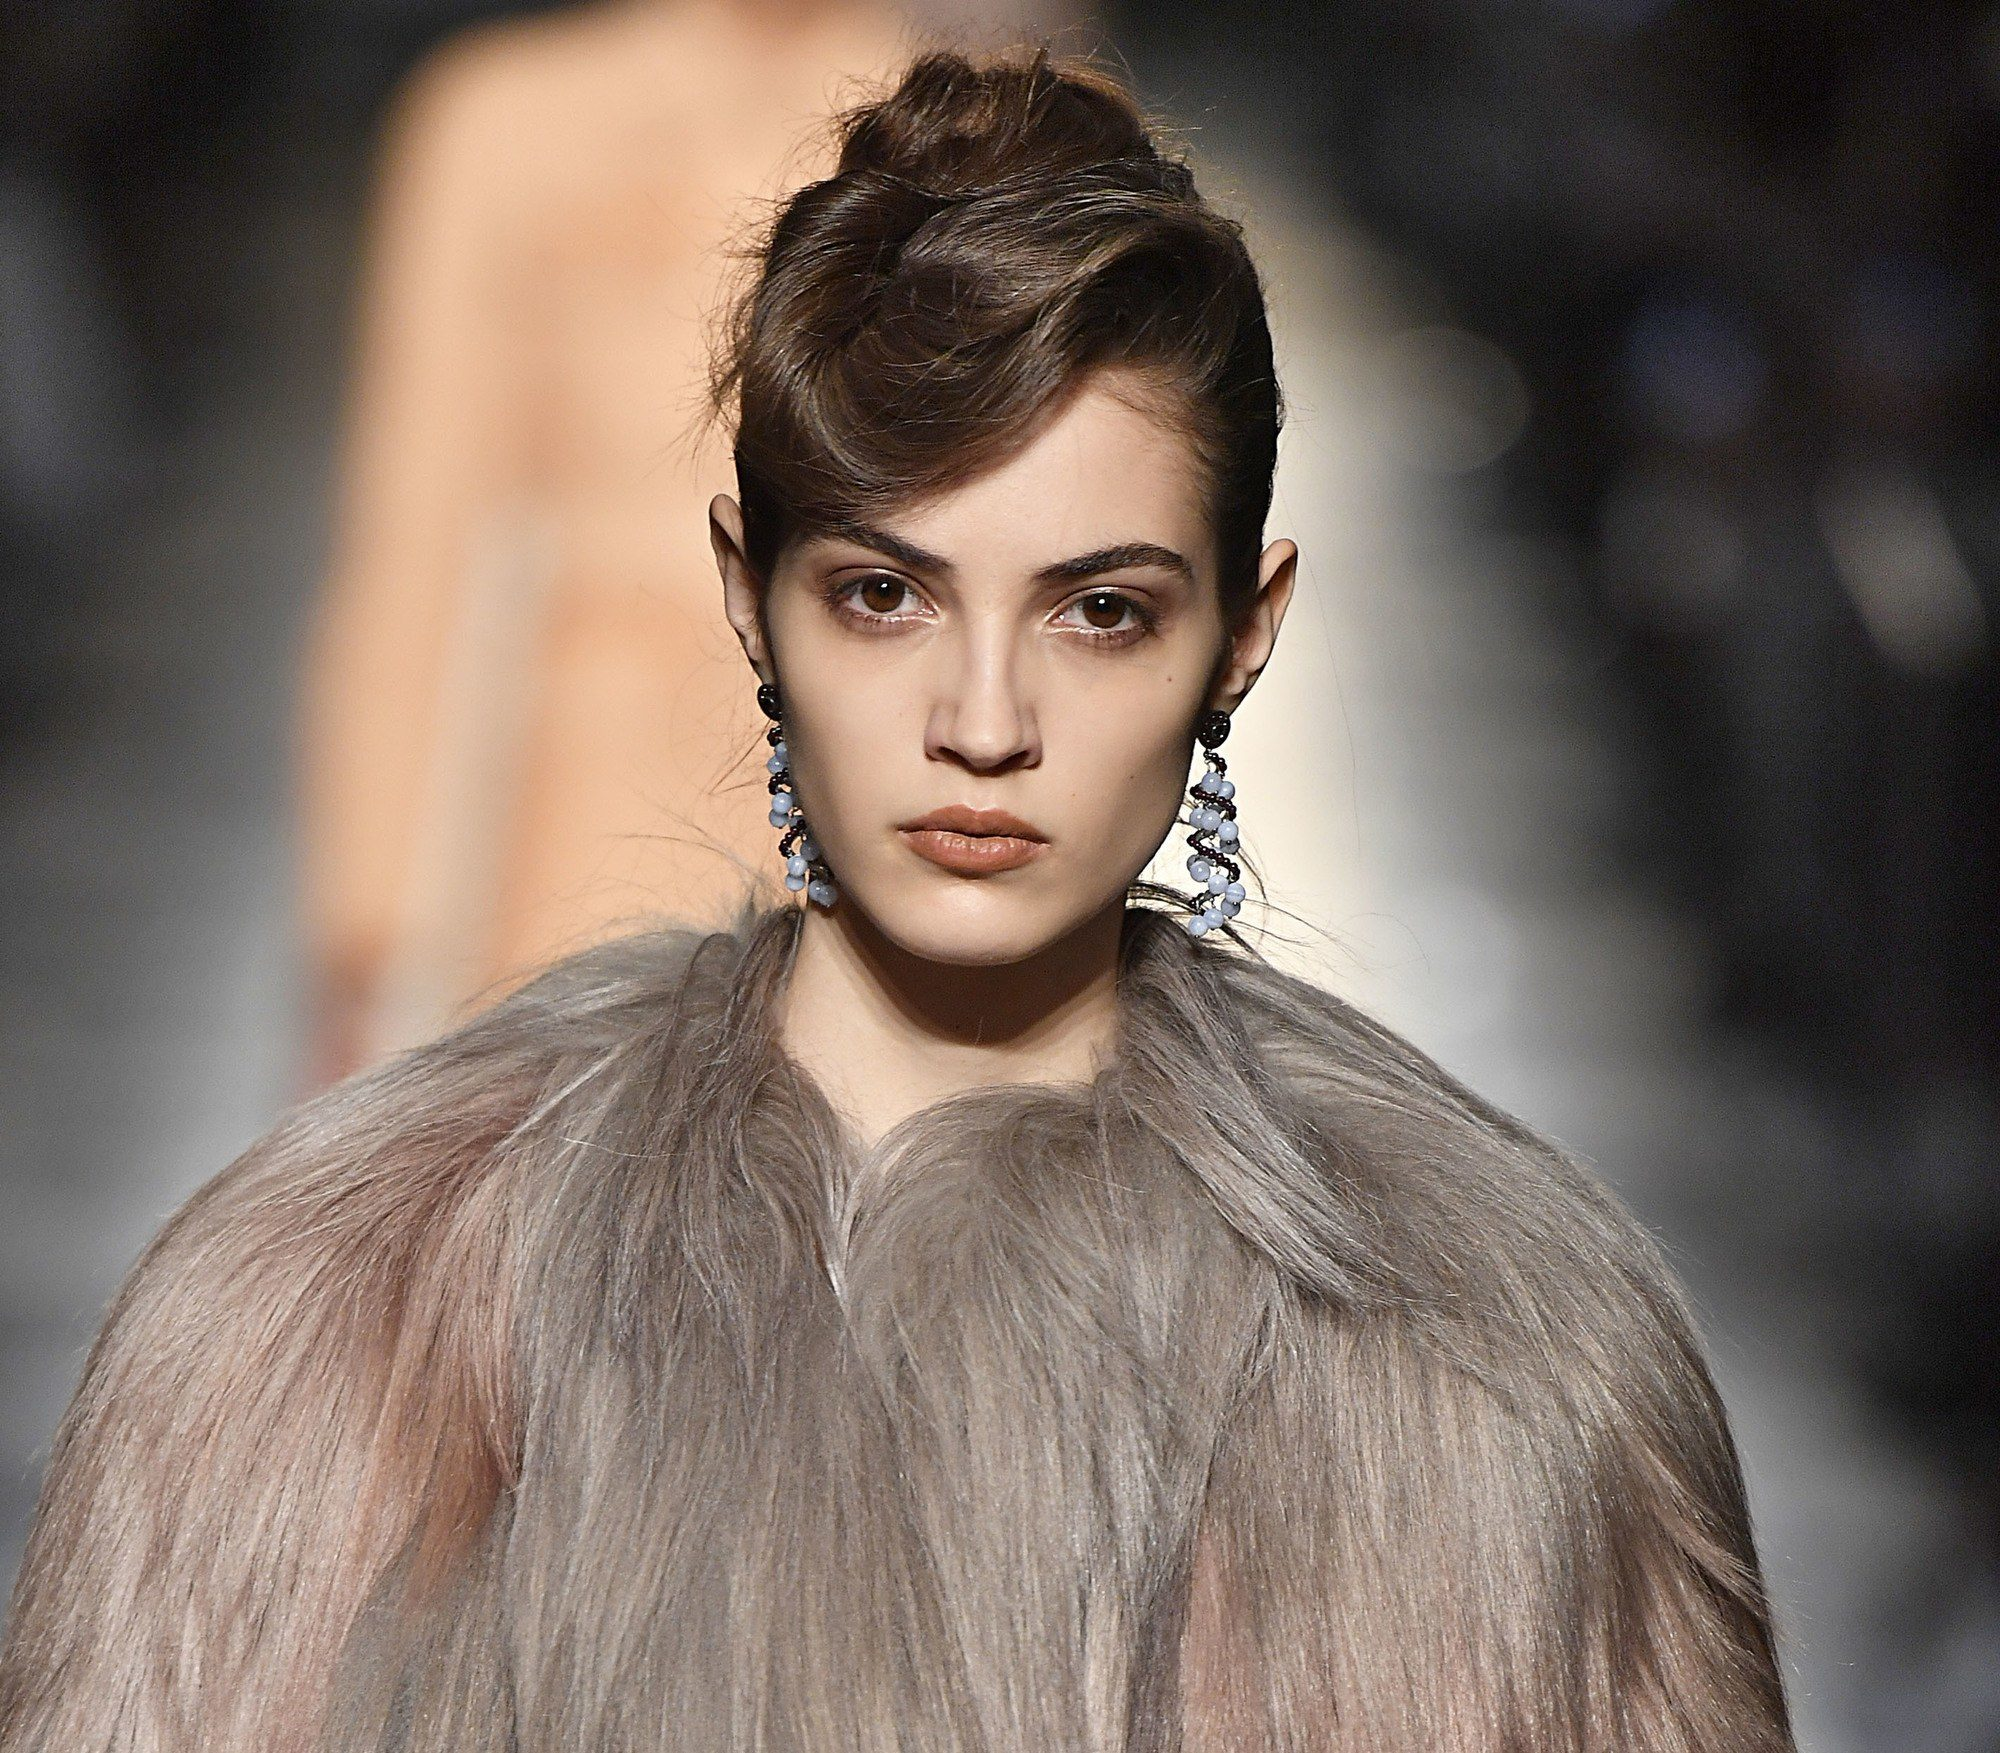 Vintage updo hairstyles: Close up shot of woman with an undone quiff hairstyle styled into an updo walking on the runway